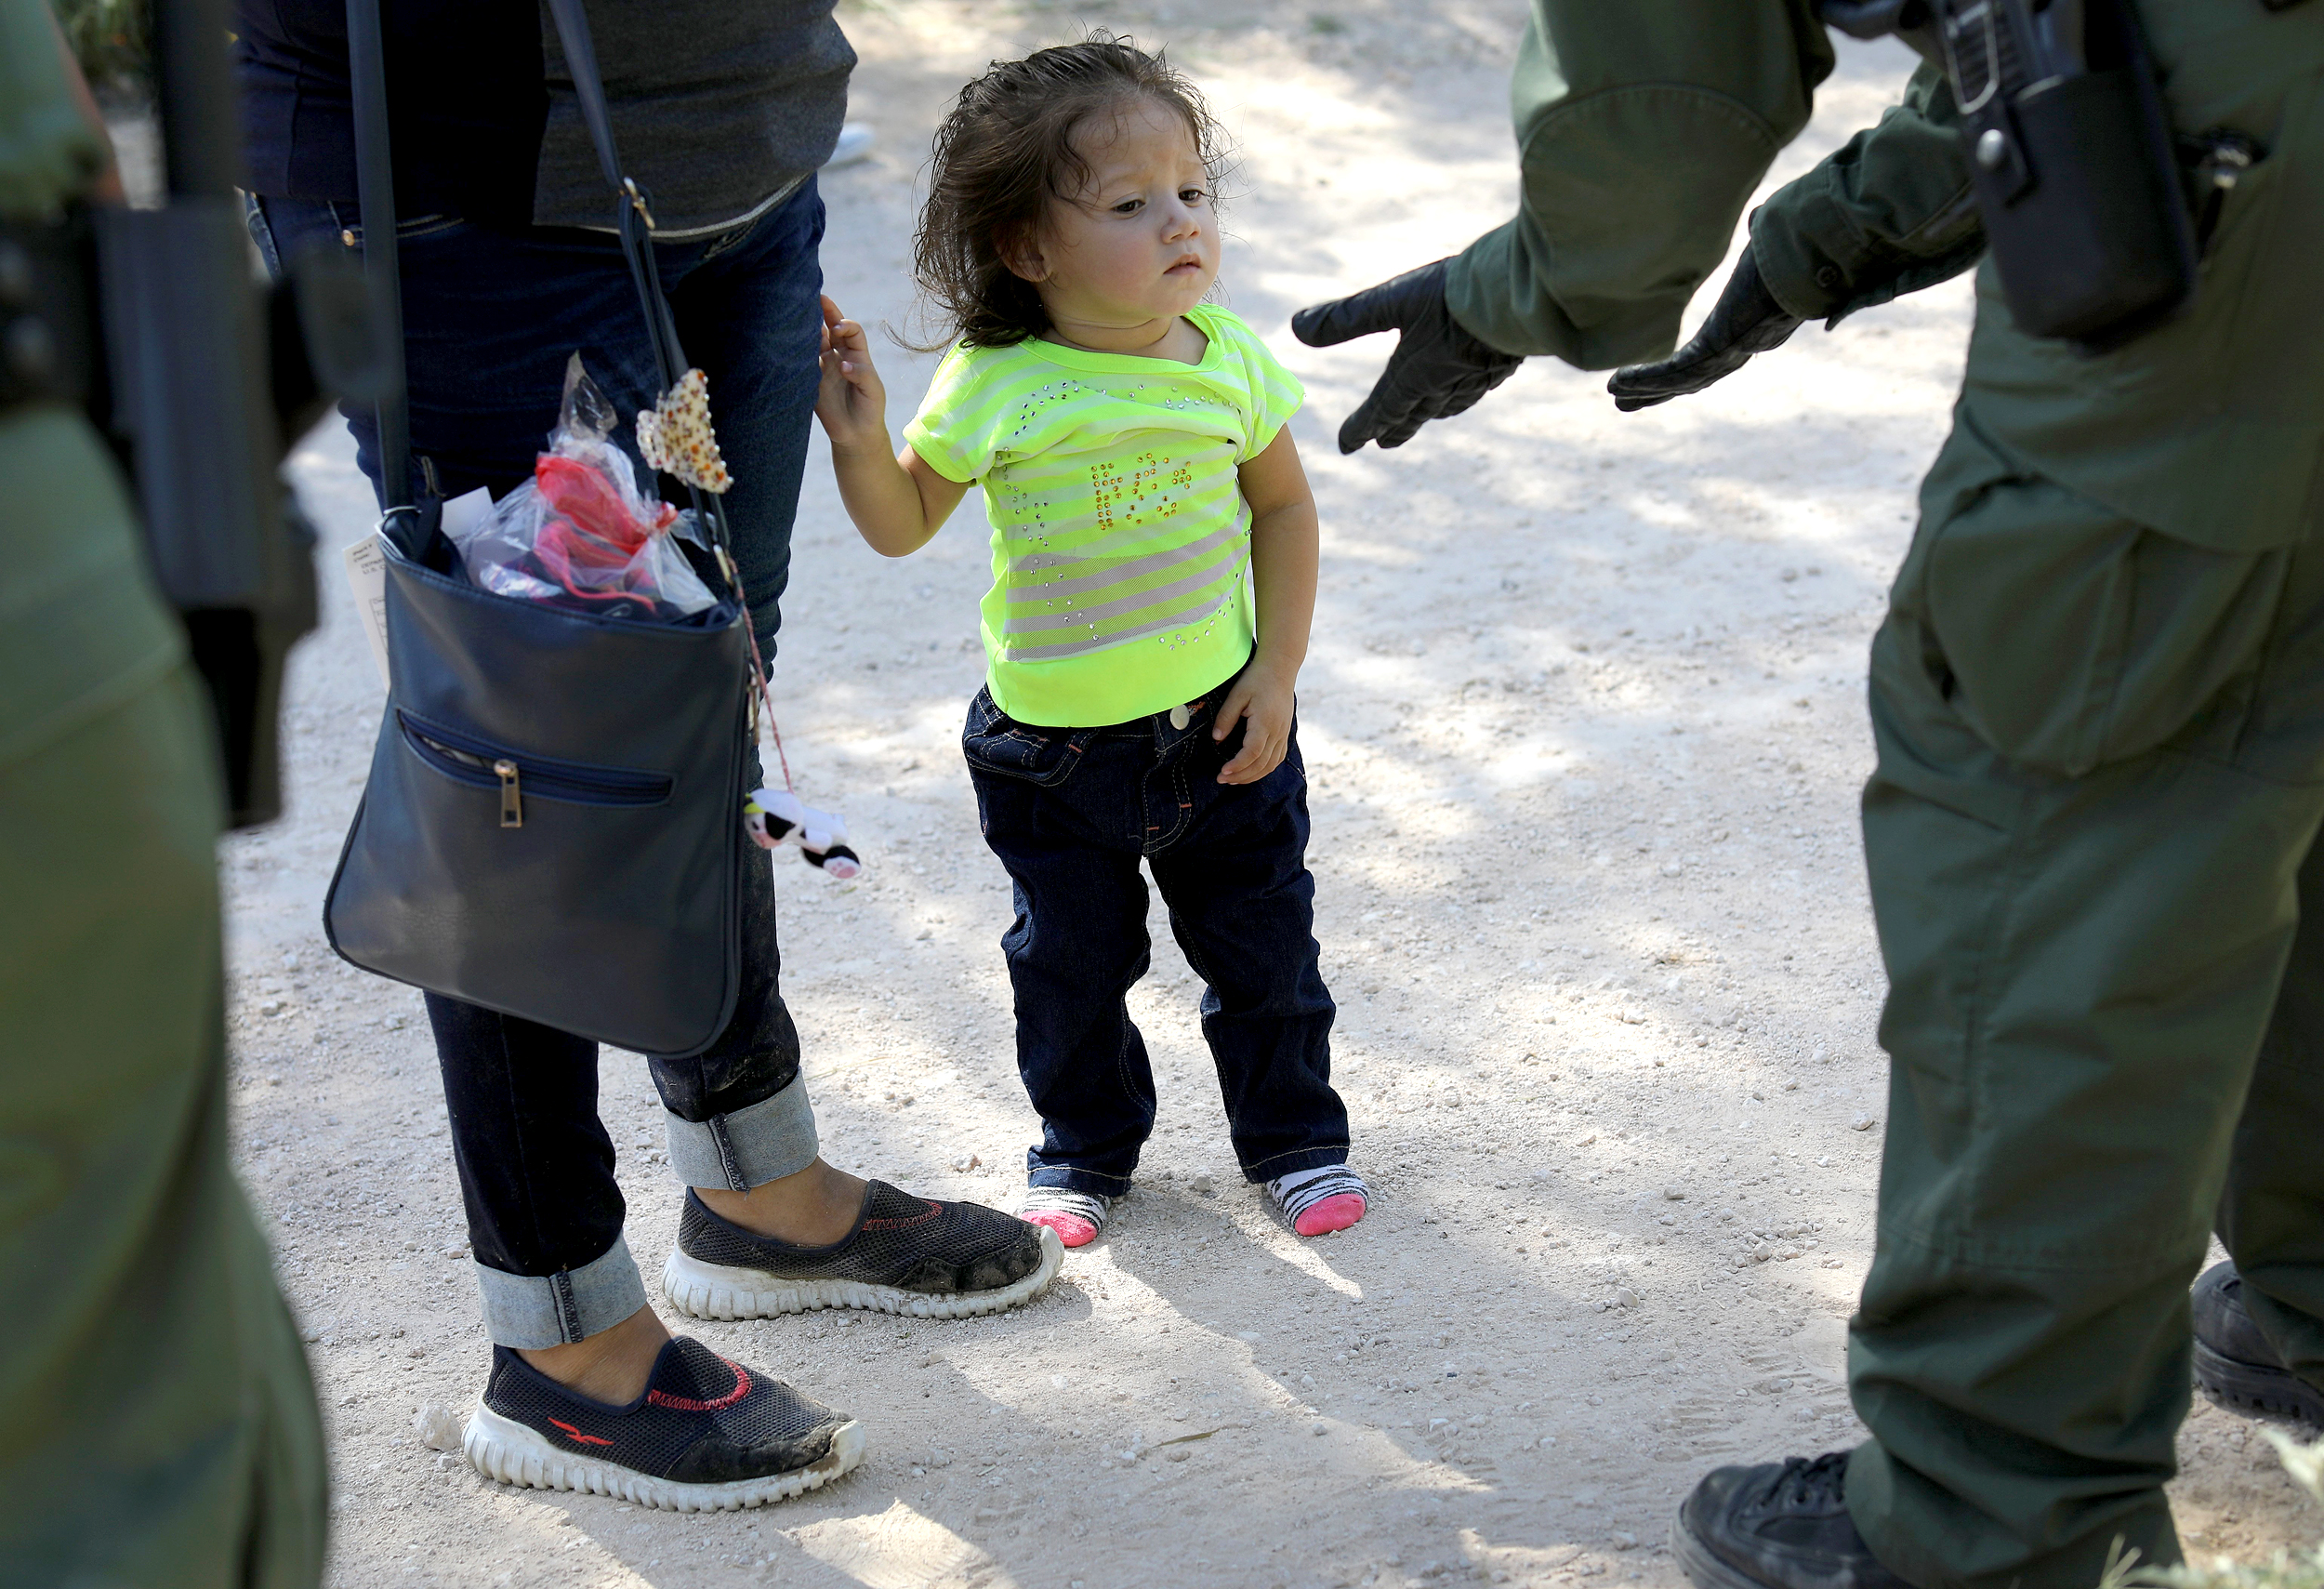 Trump administration has 6 months to identify separated migrant children